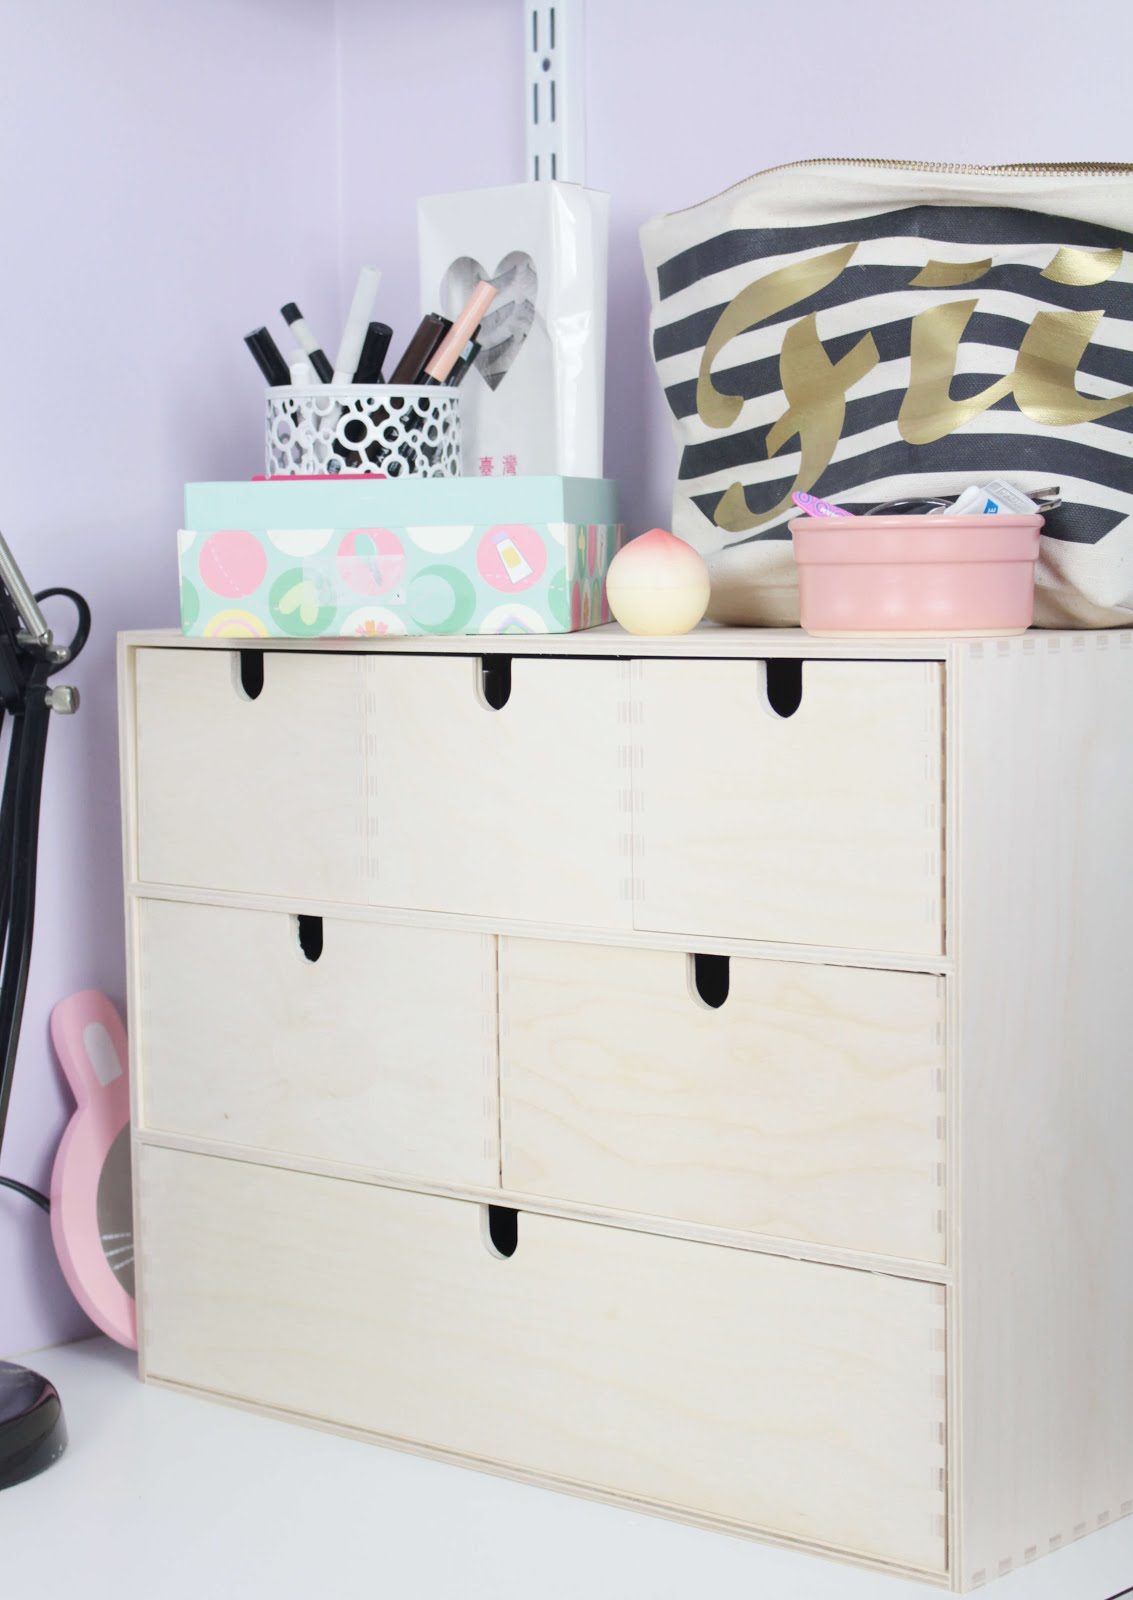 How i store my makeup ikea moppe drawers little miss fii Makeup drawer organizer ikea